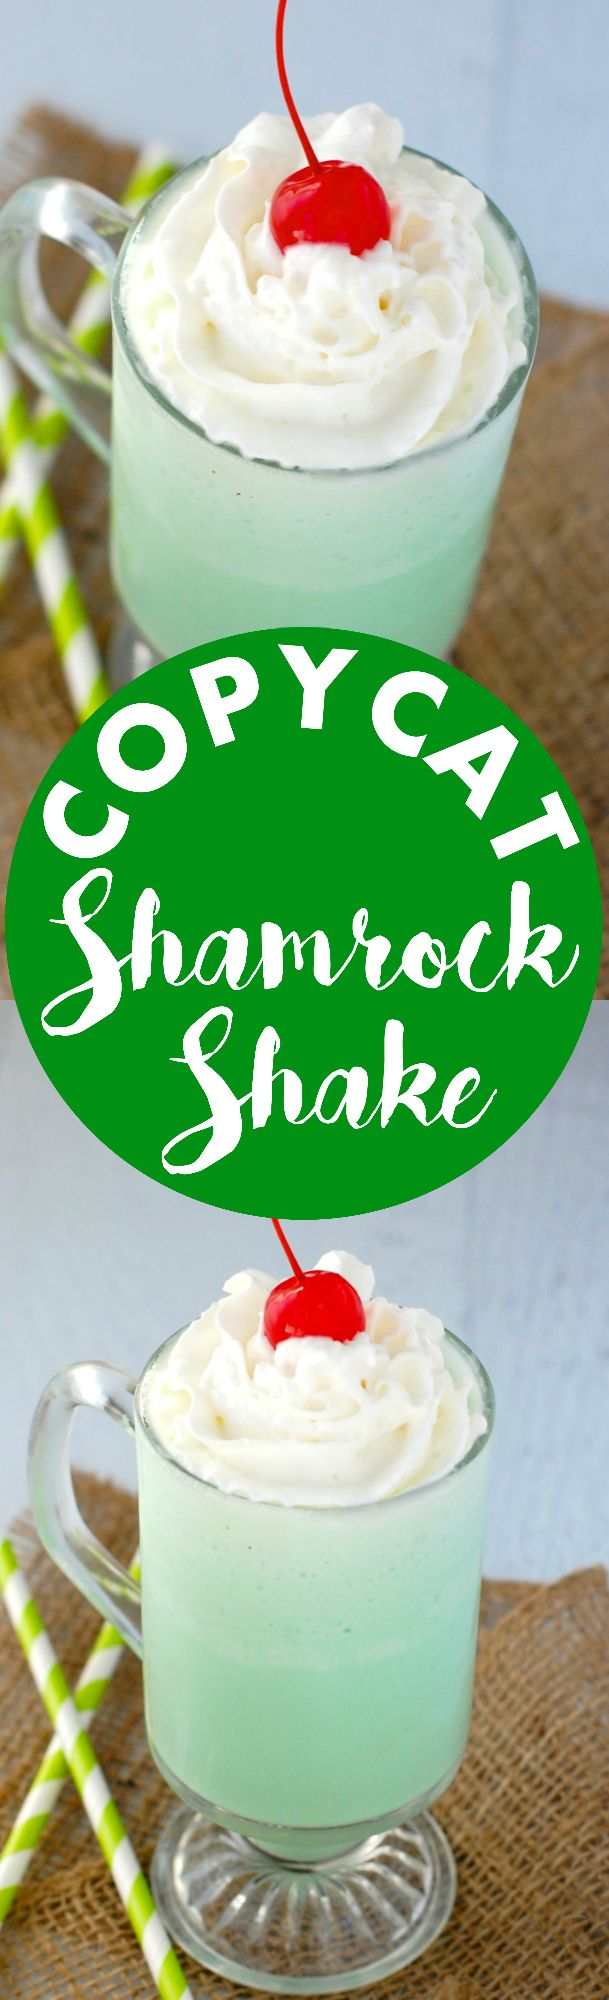 Copycat Shamrock Shake! | The delicious Shamrock Shake, made super easy at home!: